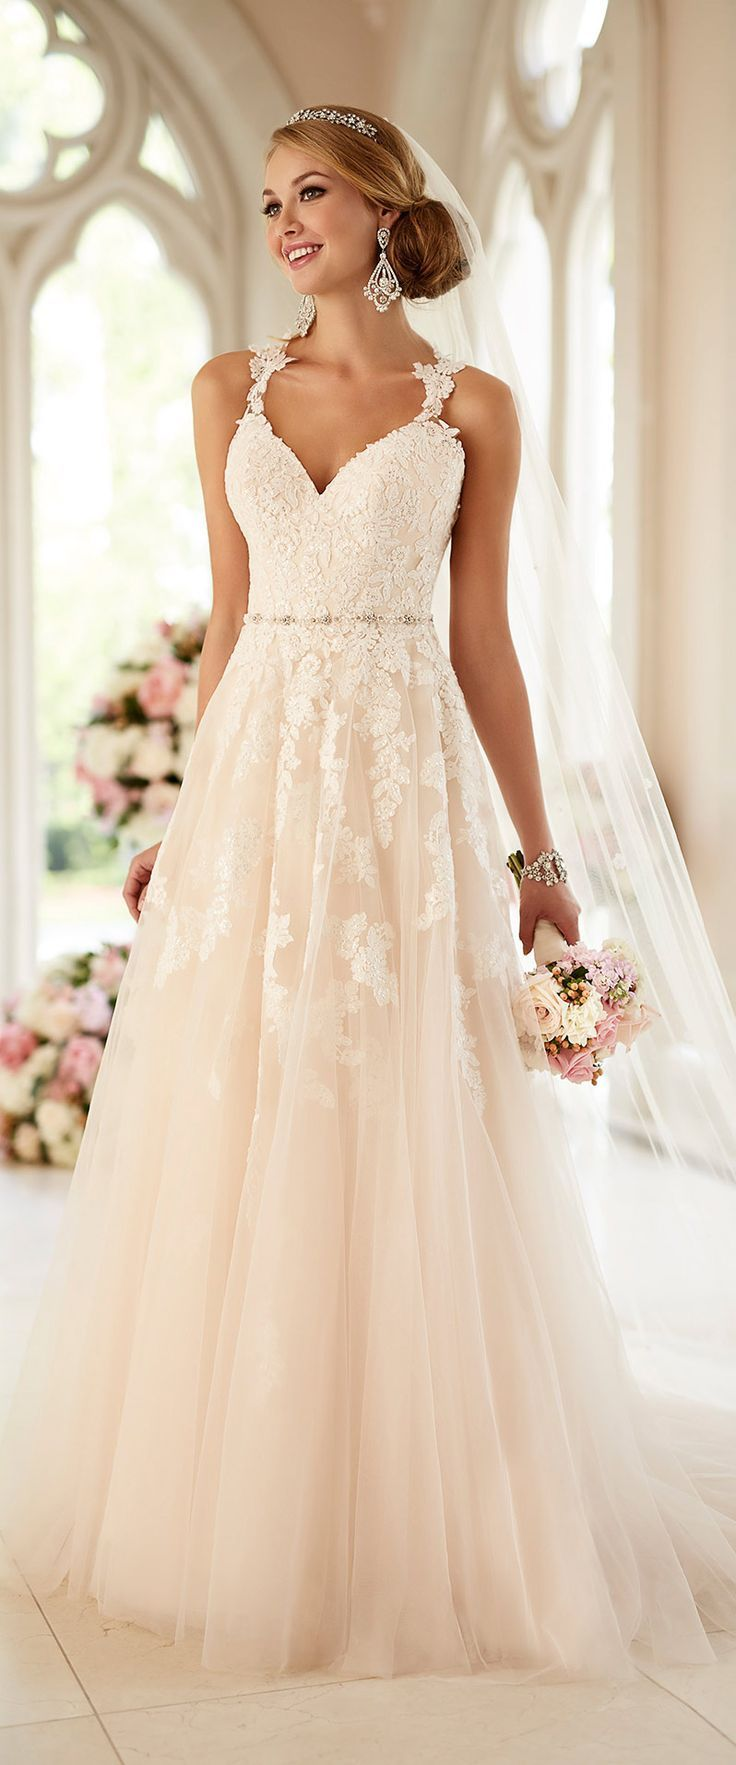 colored wedding dresses colorful wedding dresses pulchritudinous wedding dresses lace ballgown princesses strapless